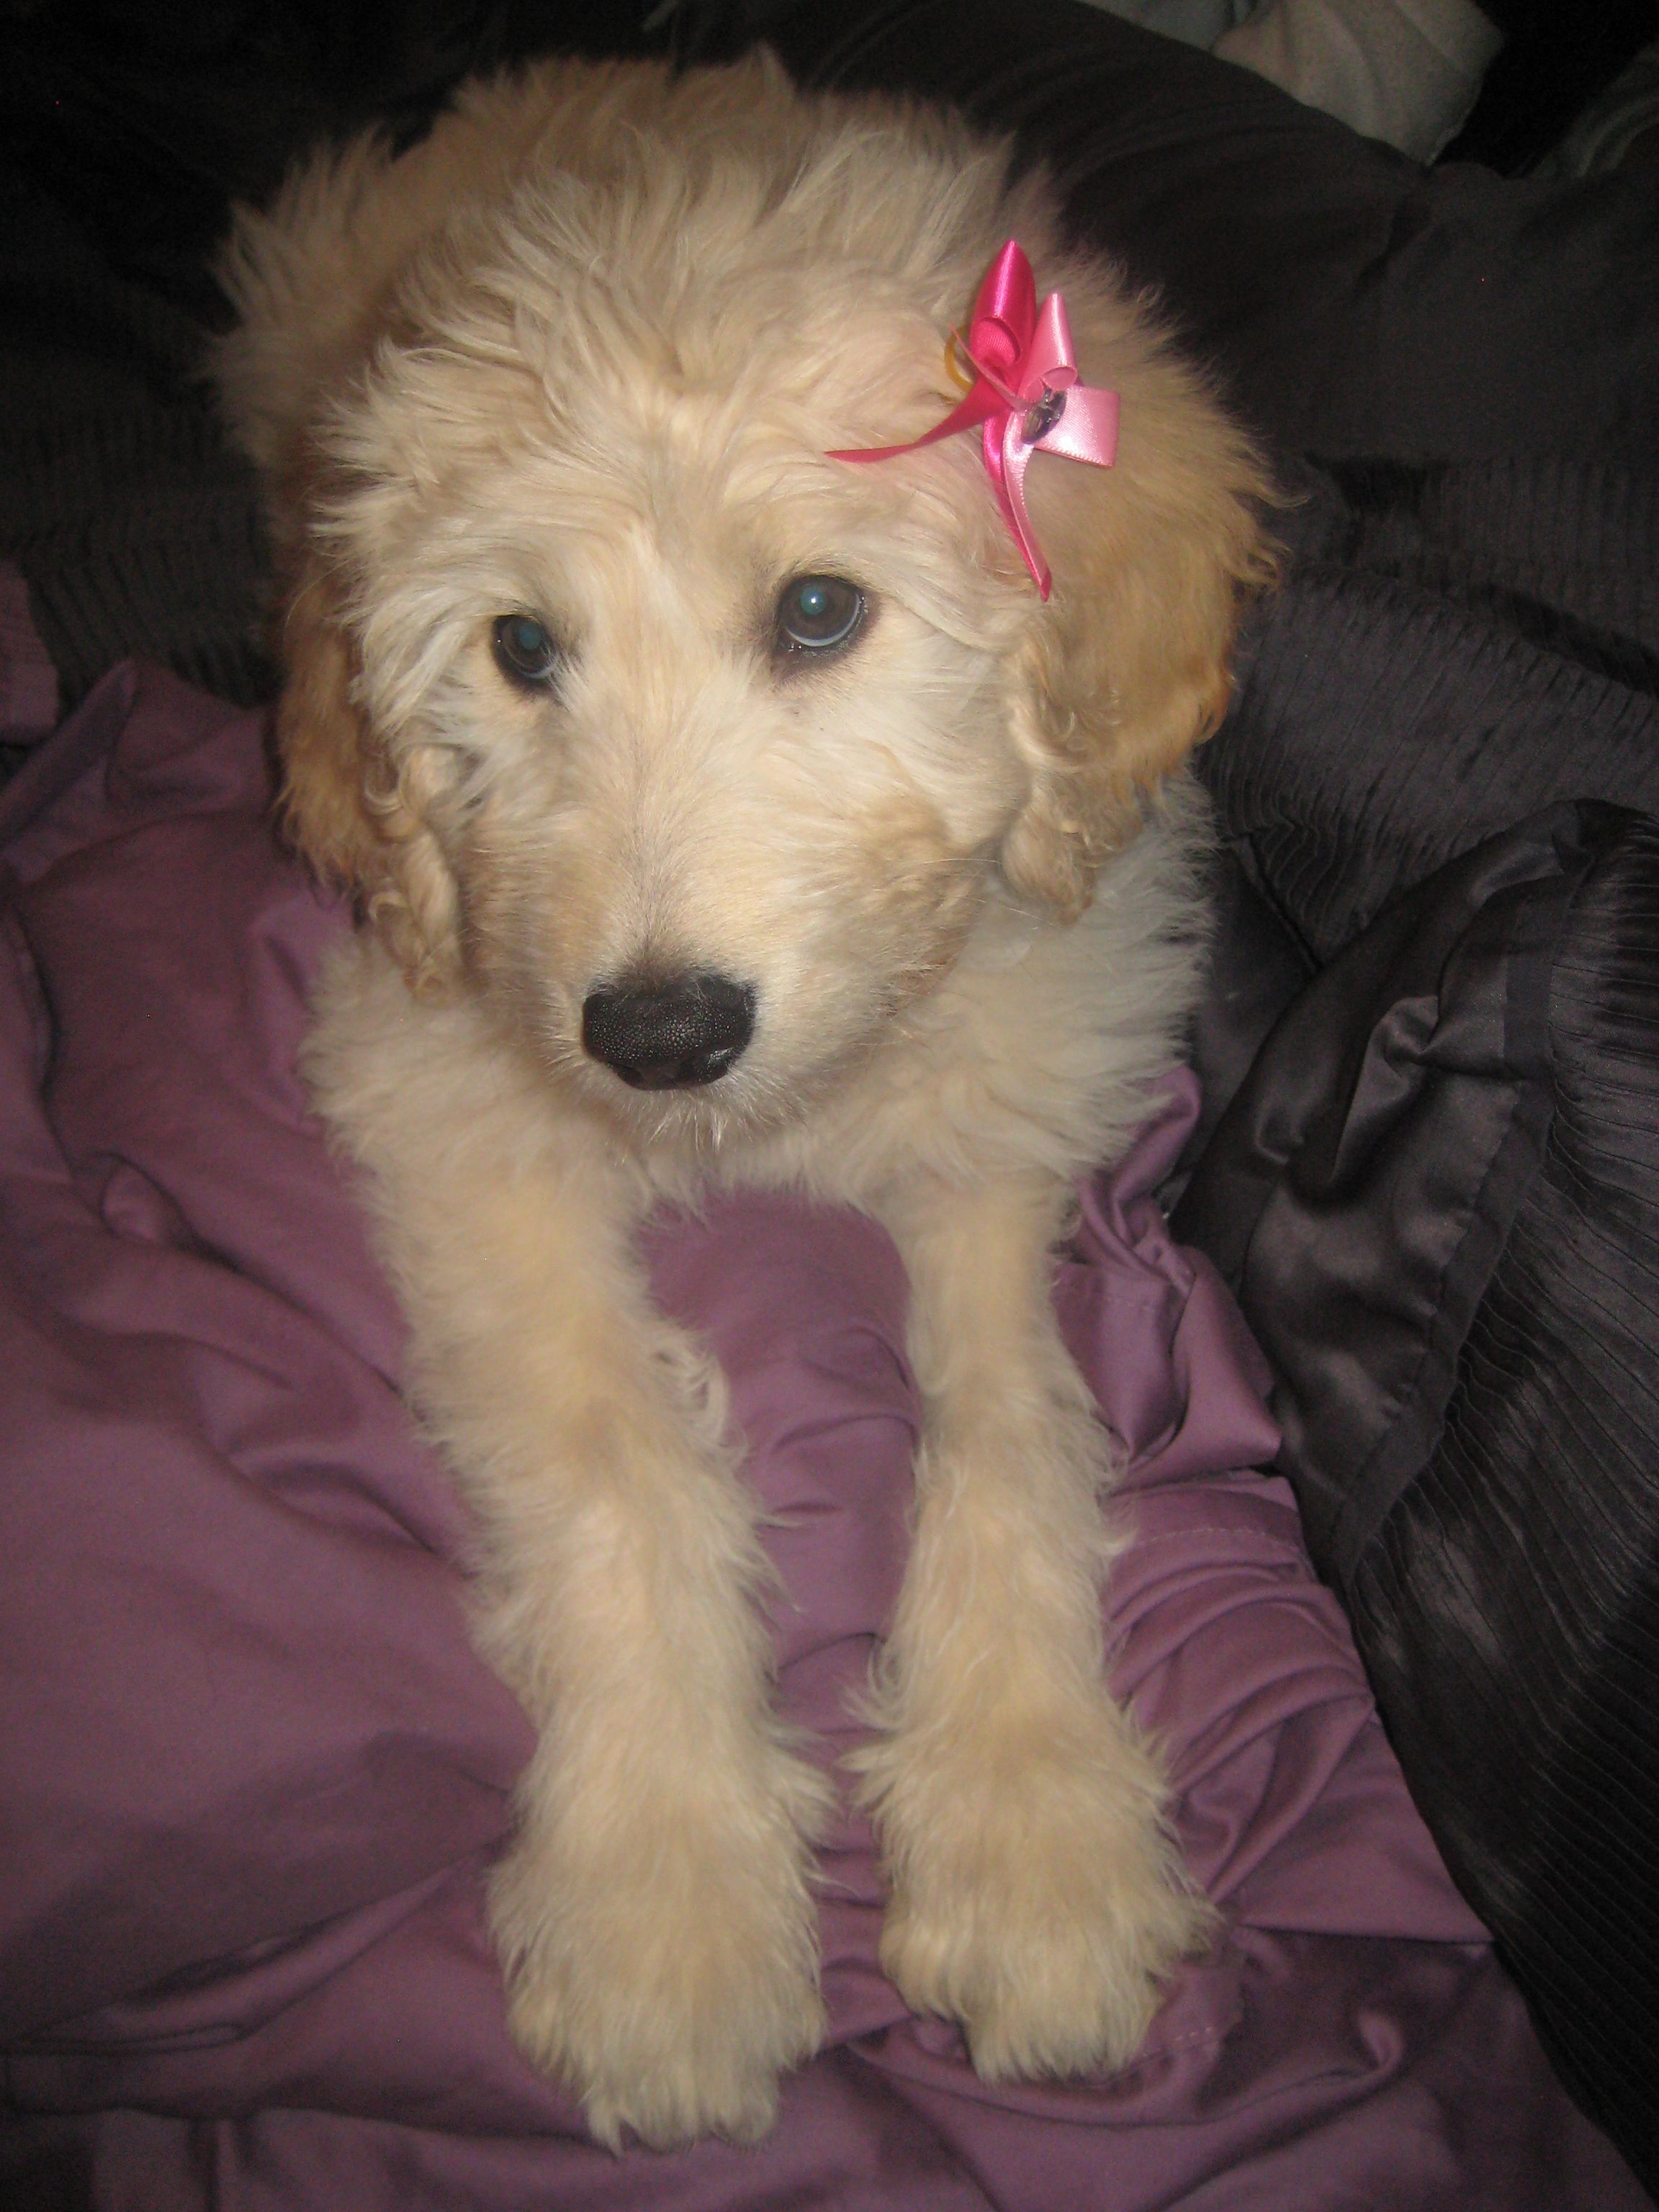 I'm so going to put a bow in my baby girl Sophie's hair!